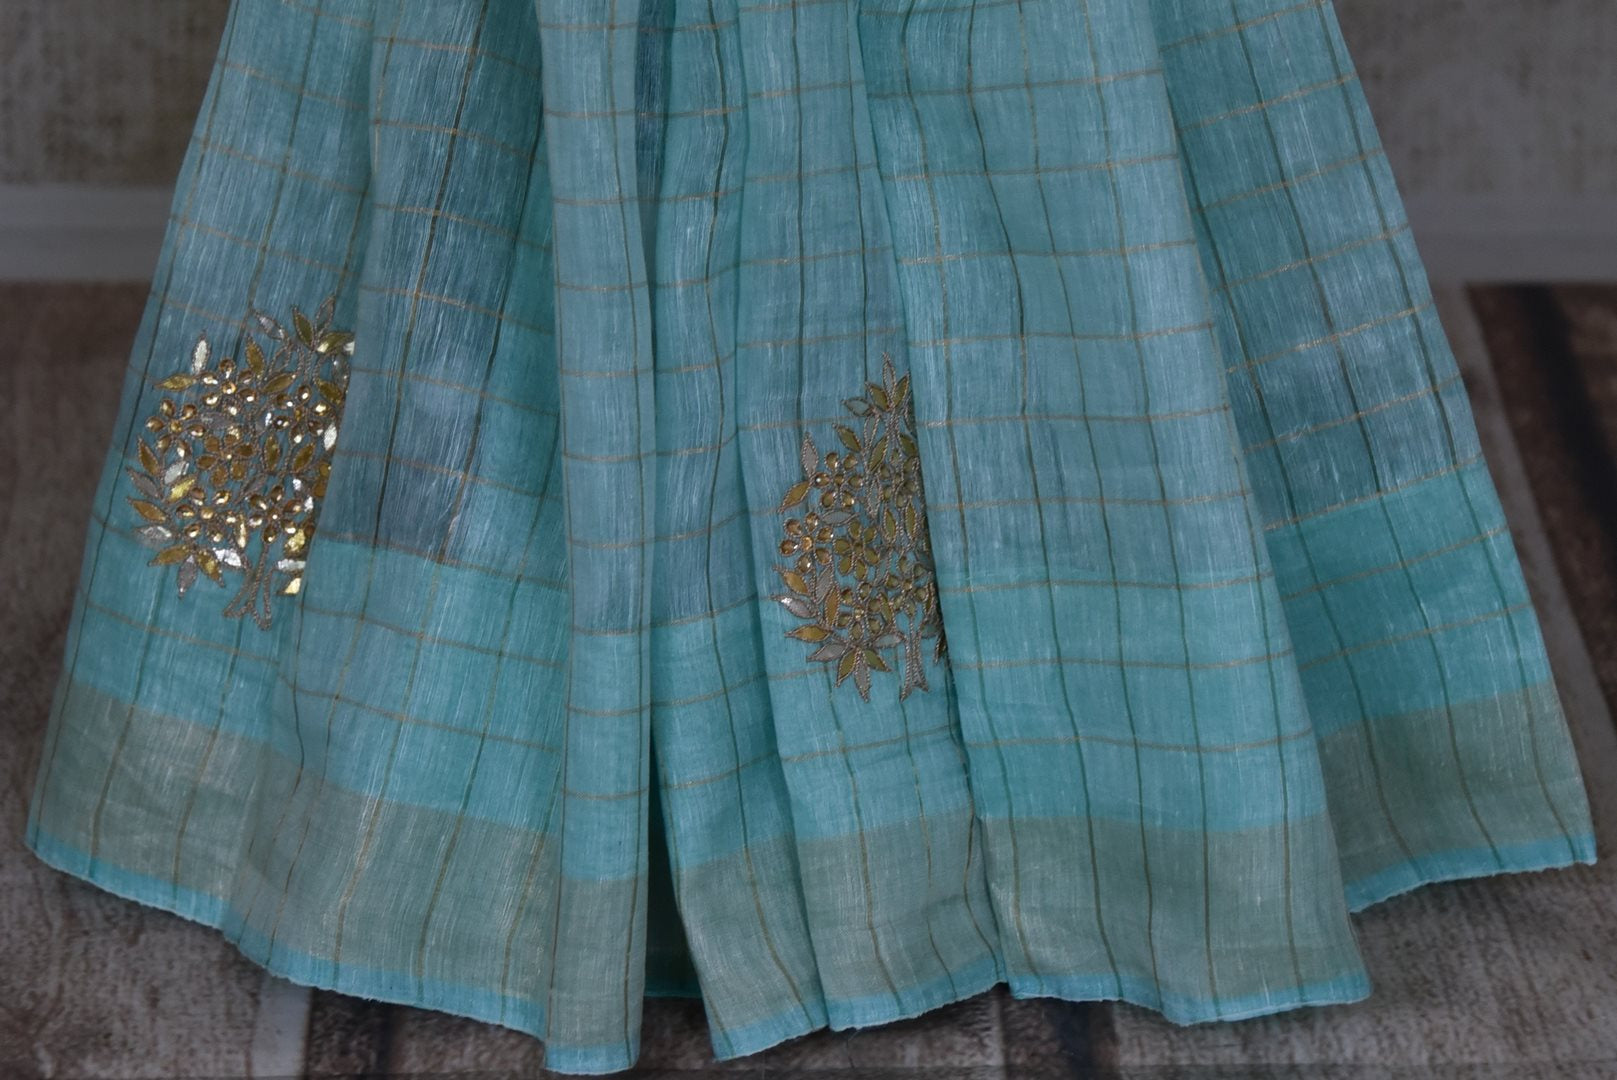 Shop beautiful light blue gota patti work check linen sari online in USA. Be the talk of parties and weddings with exquisite handloom sarees, embroidered sarees from Pure Elegance Indian clothing store in USA. Shop online now.-pleats